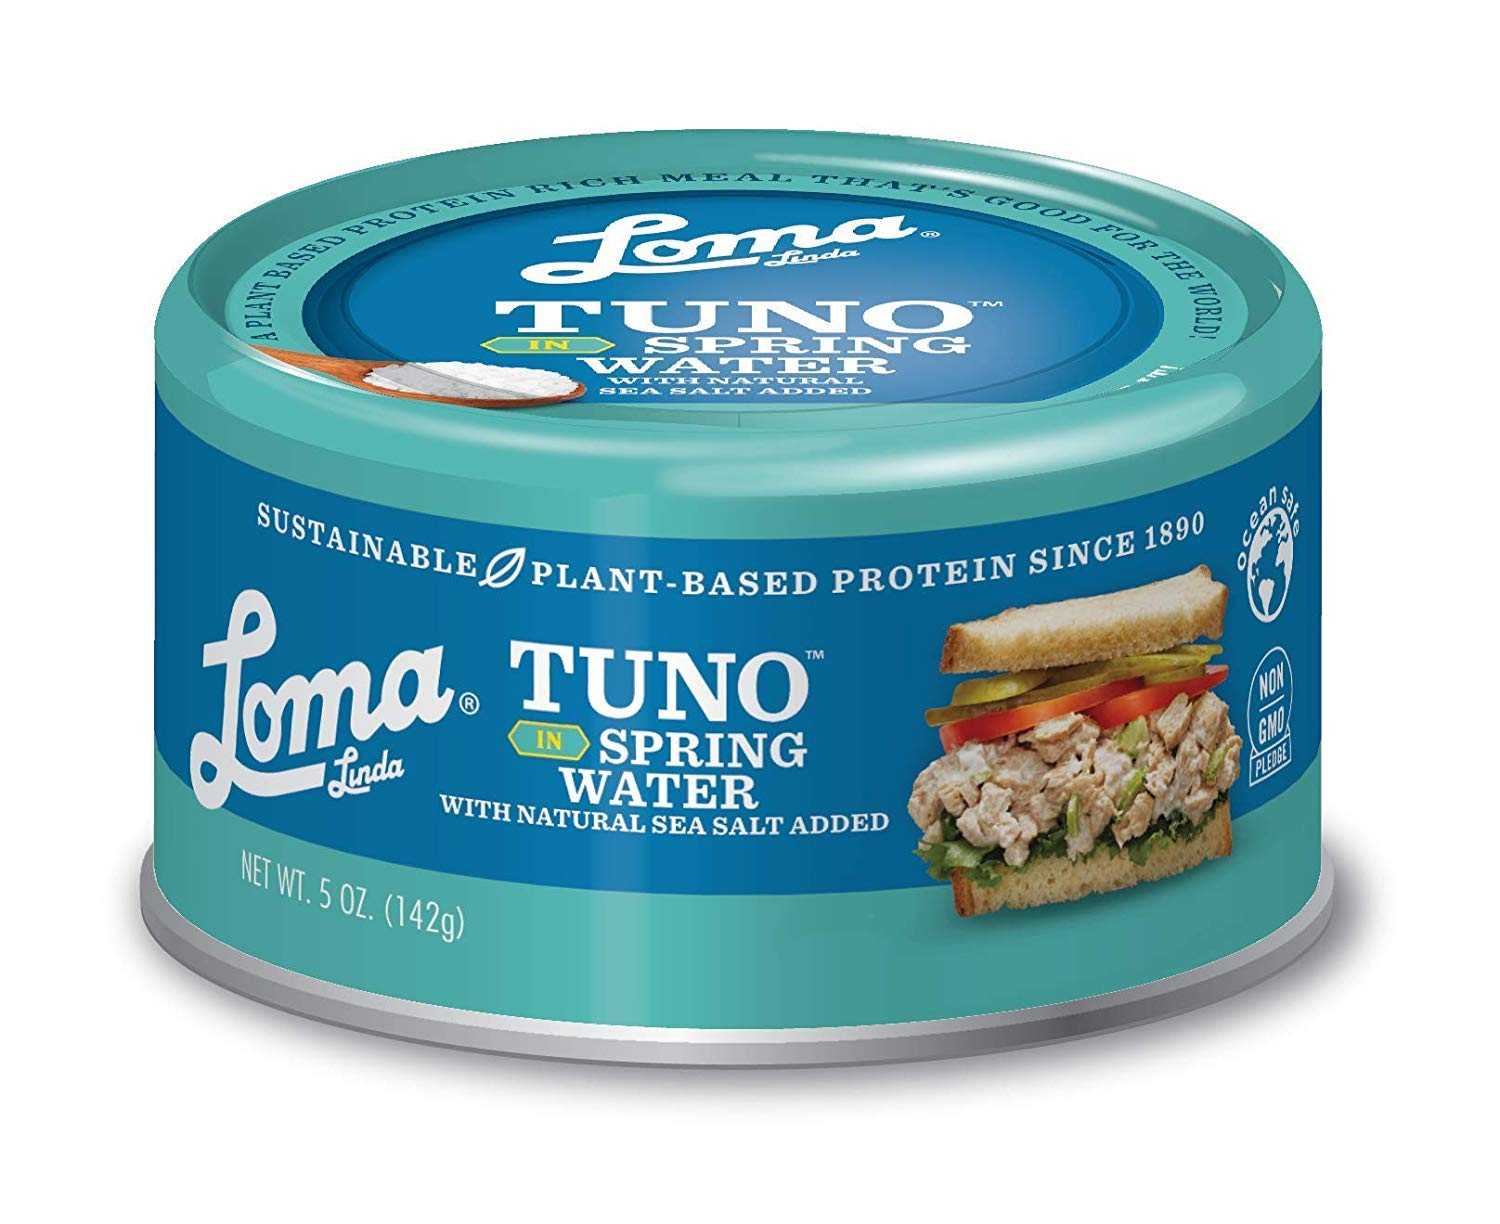 Loma Linda Plant-Based TUNO Spring Water - Sustainable Alternative (5 oz. cans) (Pack of 3)